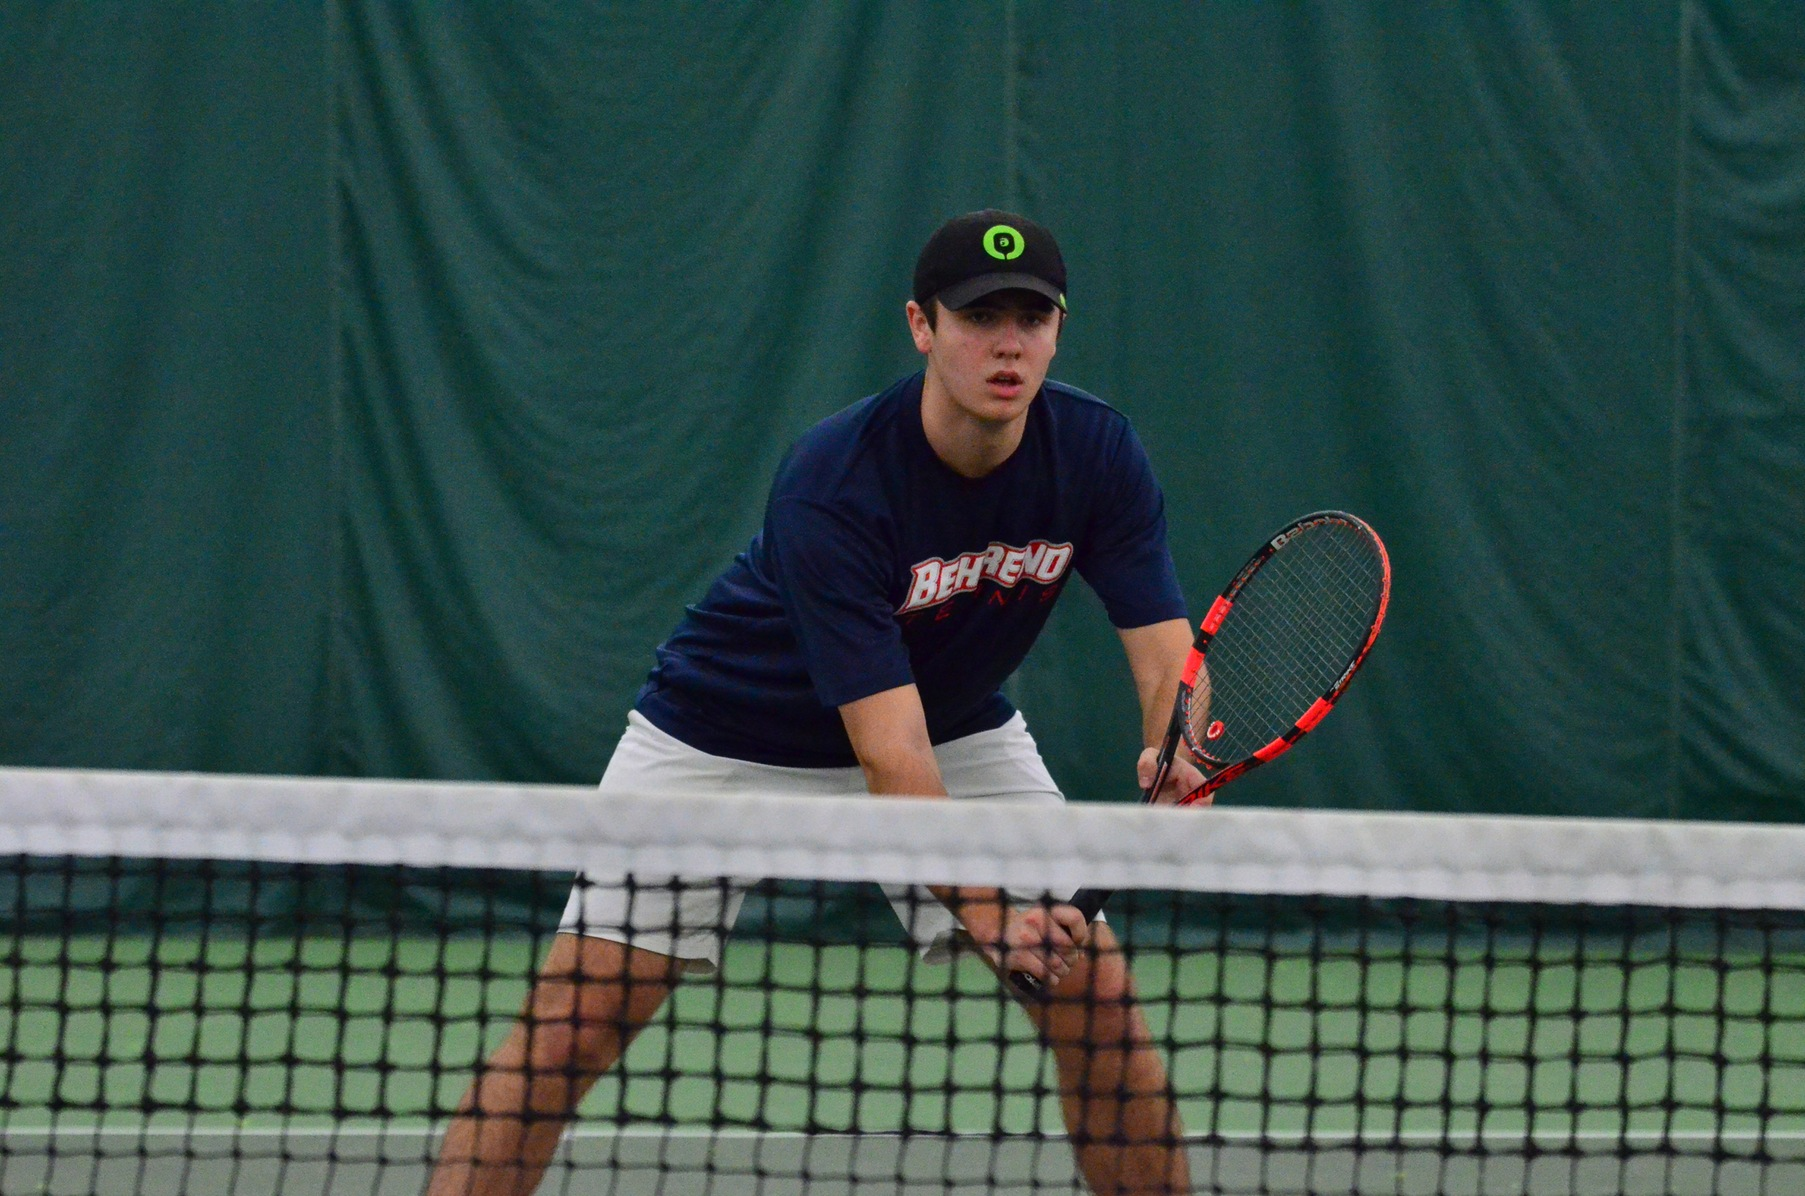 Dollard Named AMCC Men's Tennis Athlete of the Week